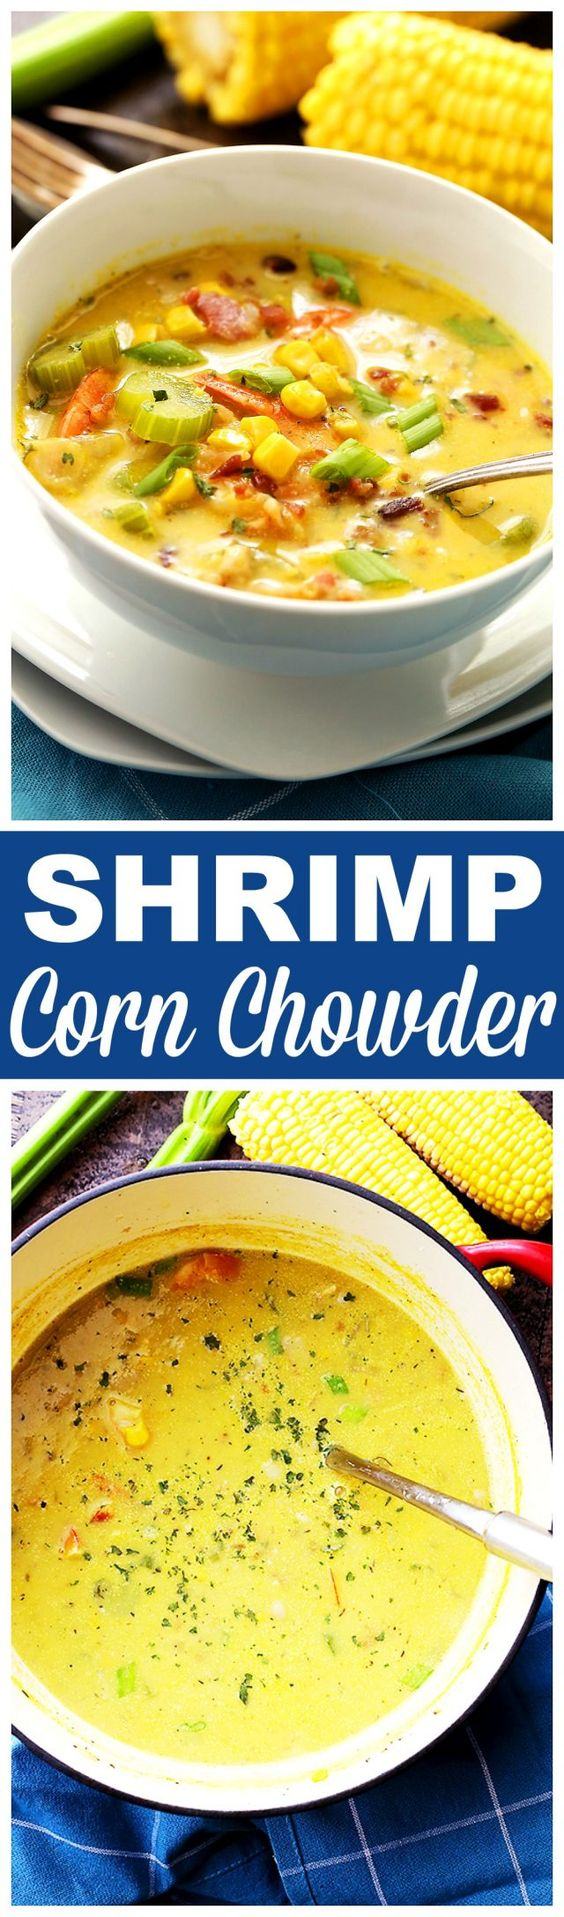 Shrimp Corn Chowder | Recipe | Sweet corn, Sweet and Shrimp corn ...